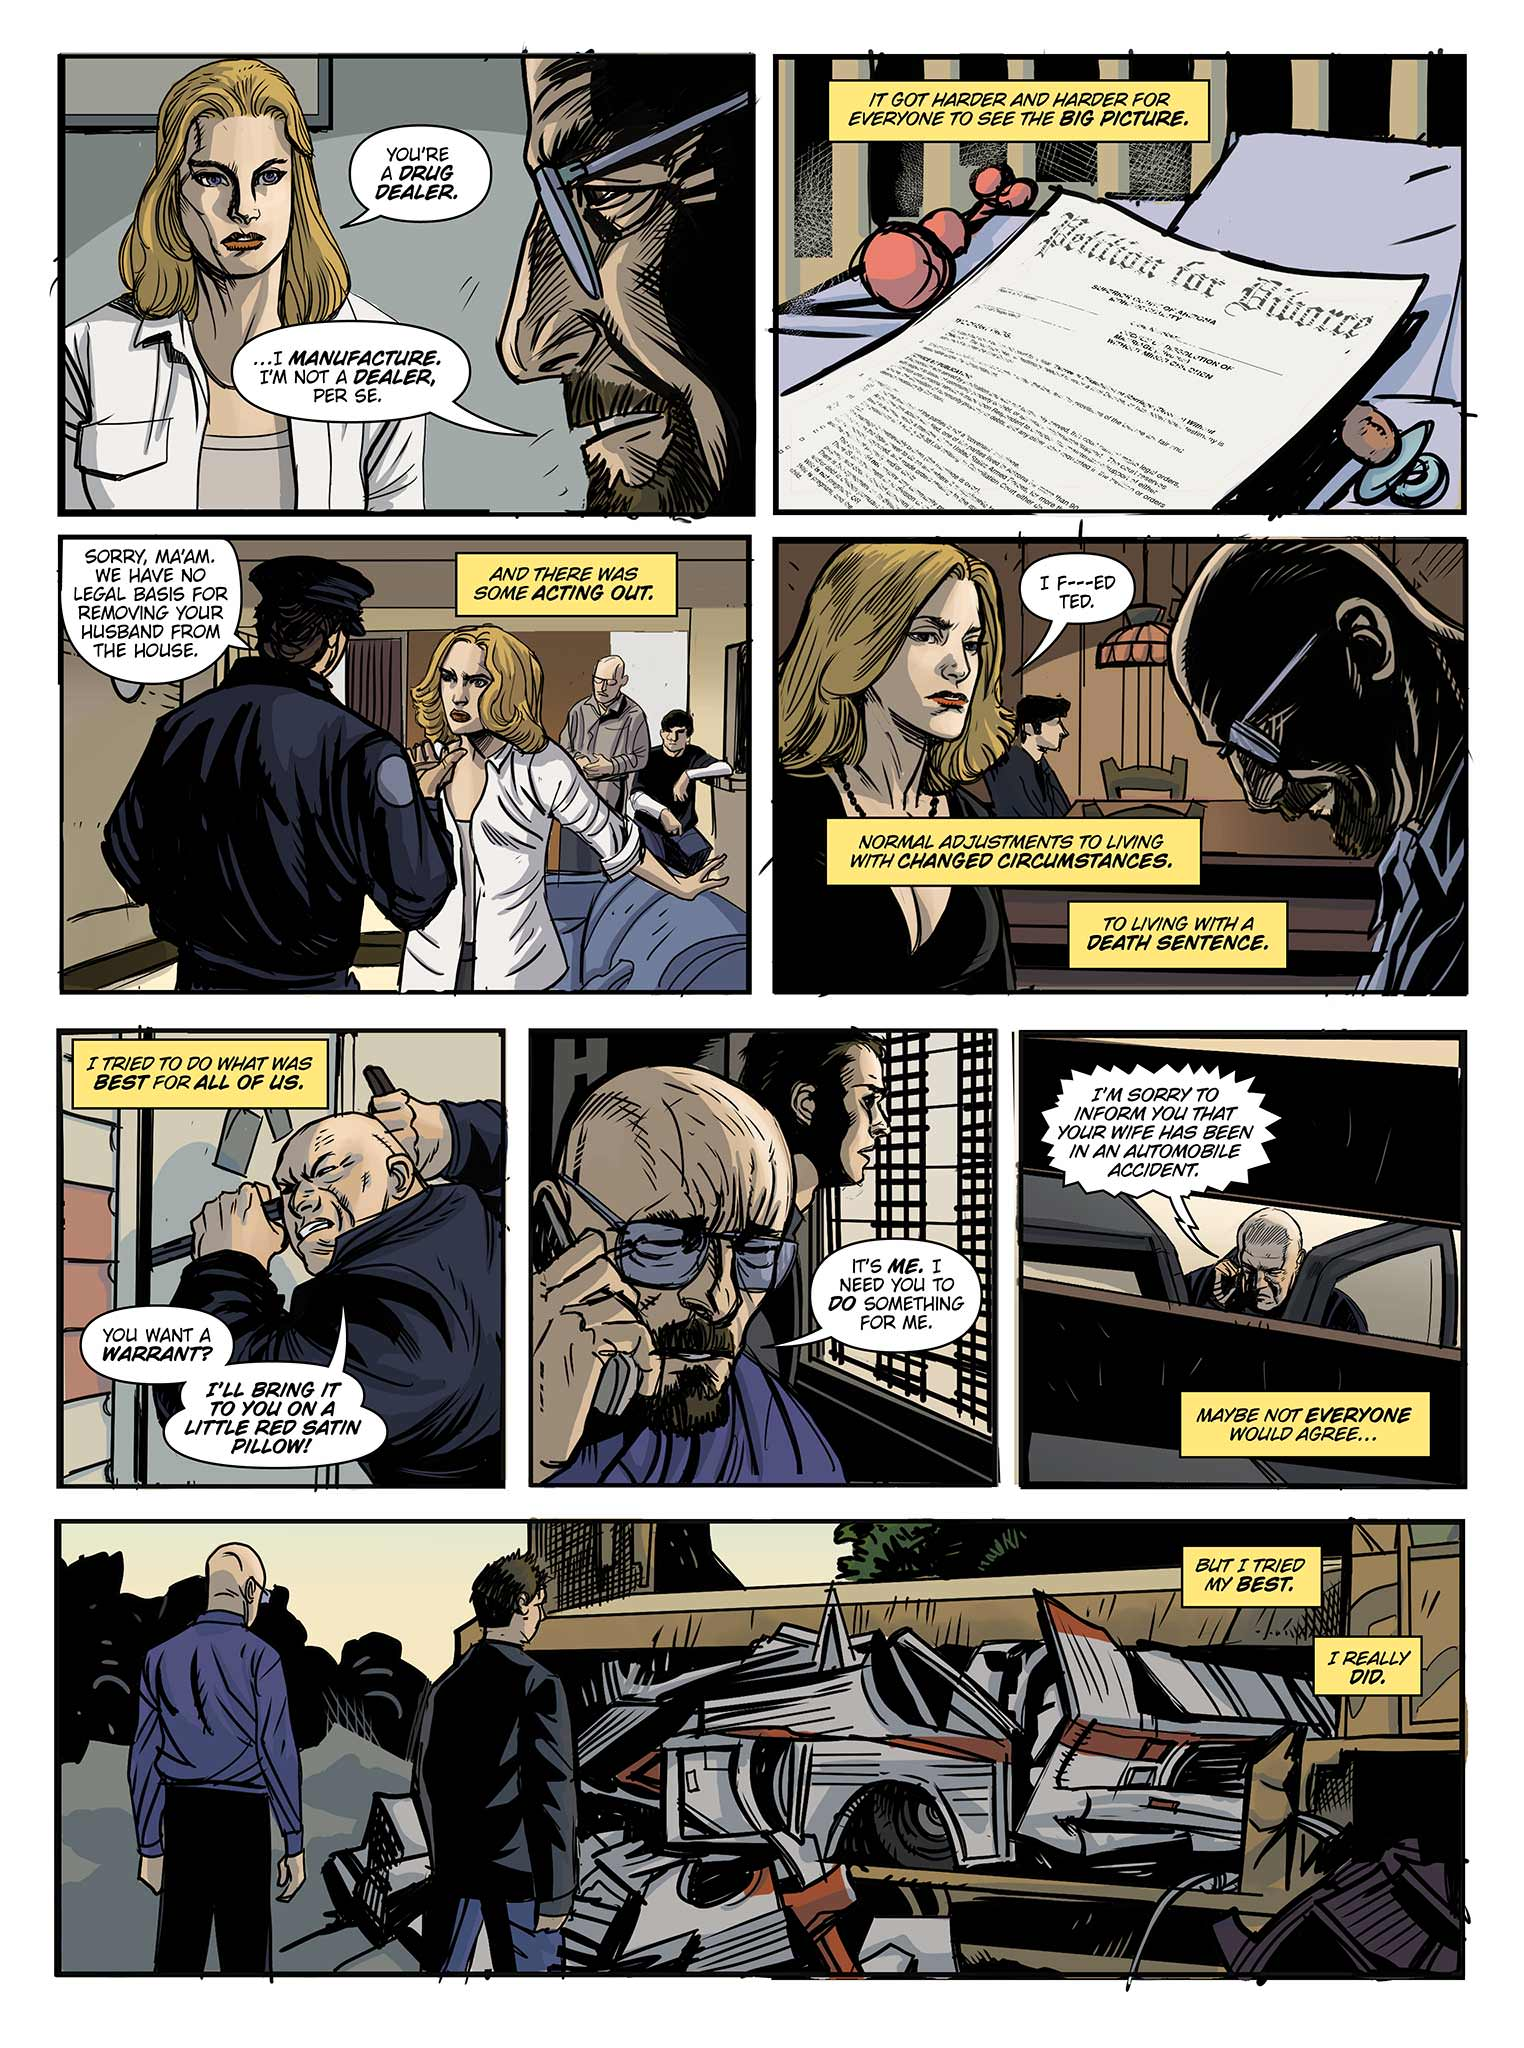 Read online Breaking Bad: All Bad Things comic -  Issue # Full - 10